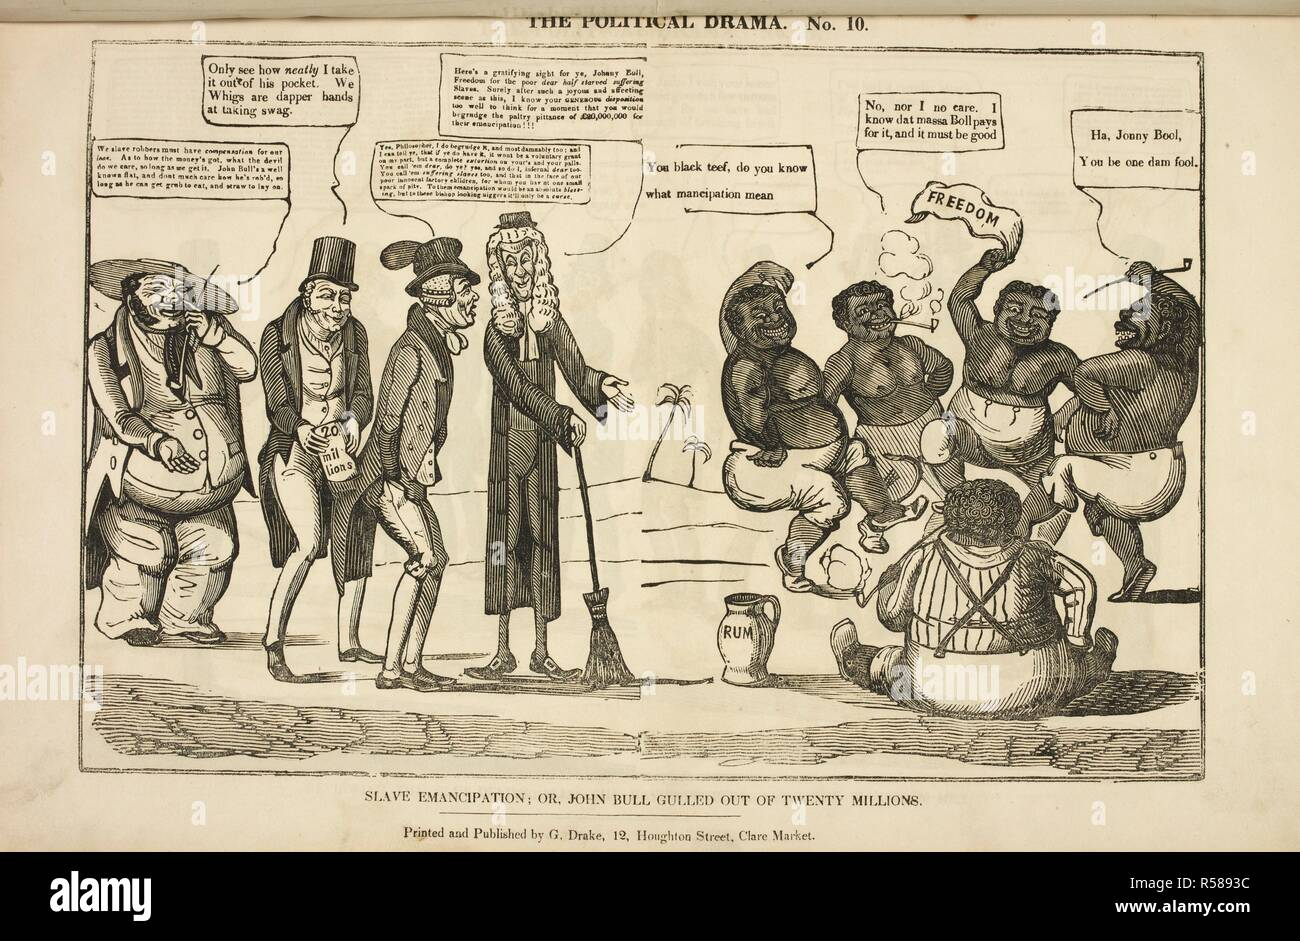 Slave Emancipation; Or, John Bull Gulled Out Of Twenty Millions'.  A Whig politician takes a note for £20 million out of John Bull's pocket. From left to right are shown: A slave-owner; A Whig politician; John Bull; A 'philosopher', an abolitionist dressed in clerical garb and bewigged; and a group of slaves gathered around a jar of rum.  Three landowners asking for their compensation to a politician and a group of newly emancipated black slaves.    . The Political drama. [A series of caricatures.]. [London] : Printed and published by G. Drake, 12, Houghton Street, Clare Market, [1834-1835.]. - Stock Image